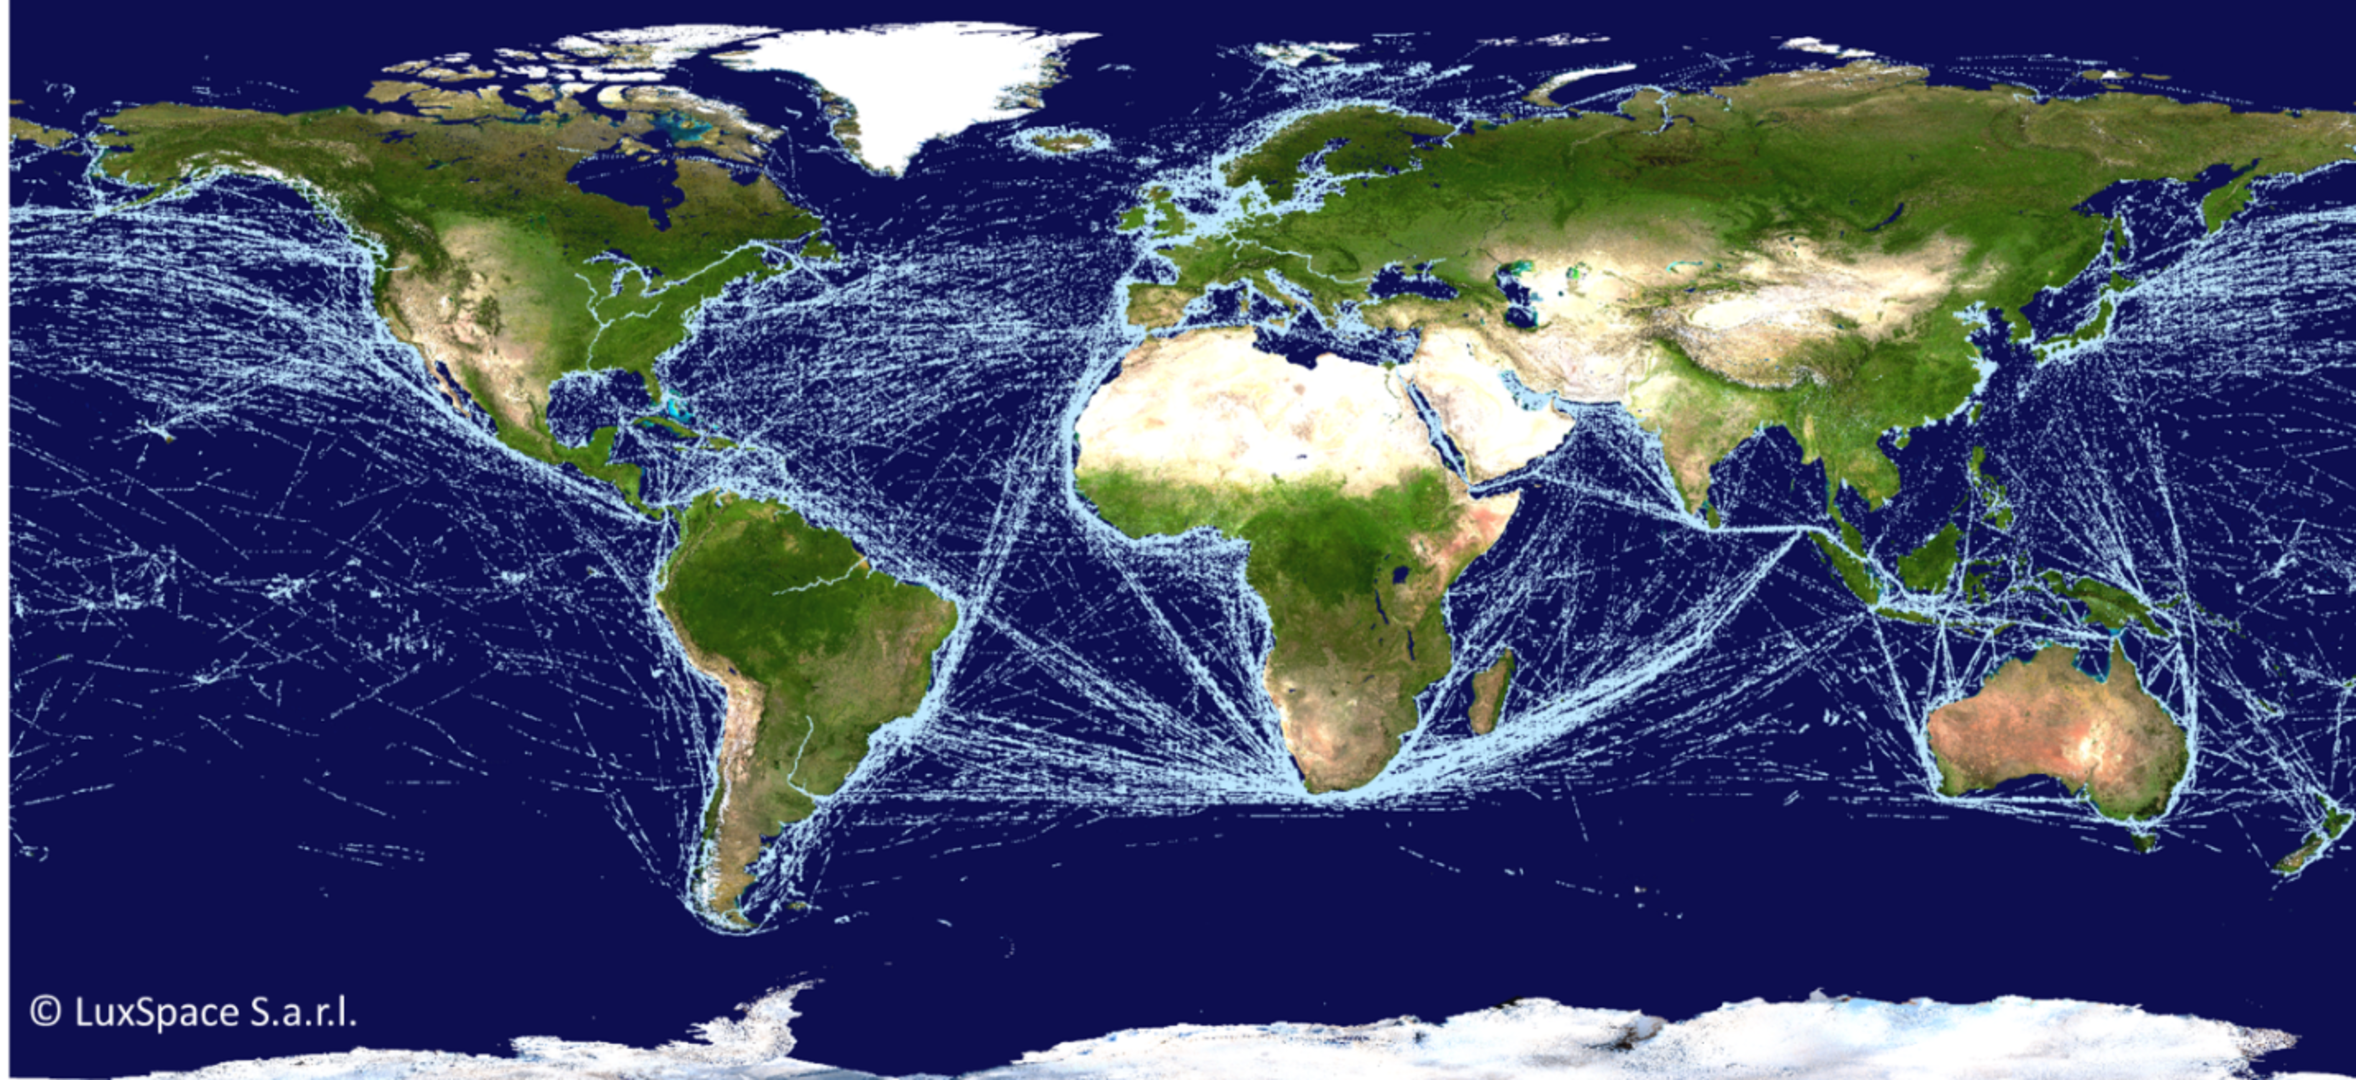 Map of global ship traffic based on satellite detection of signals that all ships transmit to enable the tracking of maritime traffic. This is the ocean equivalent of air traffic control.